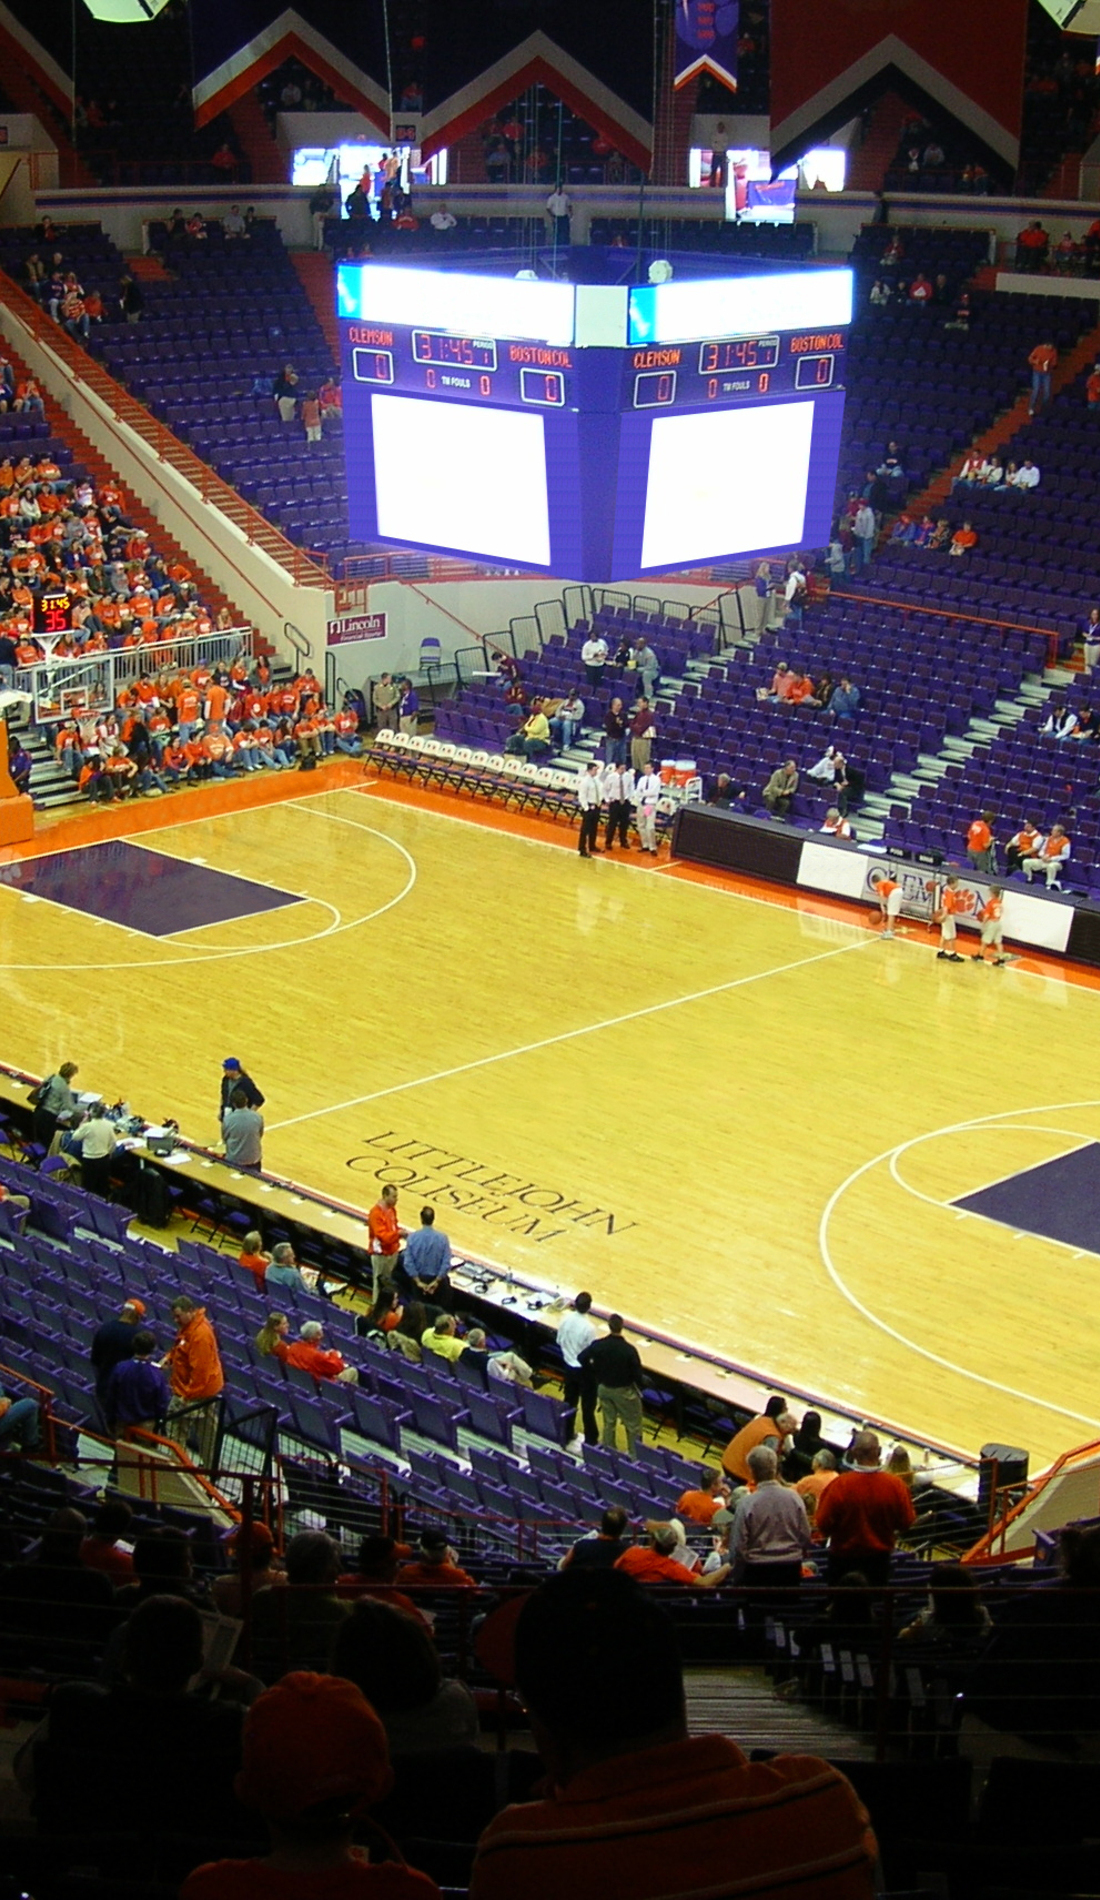 A Clemson Tigers Basketball live event